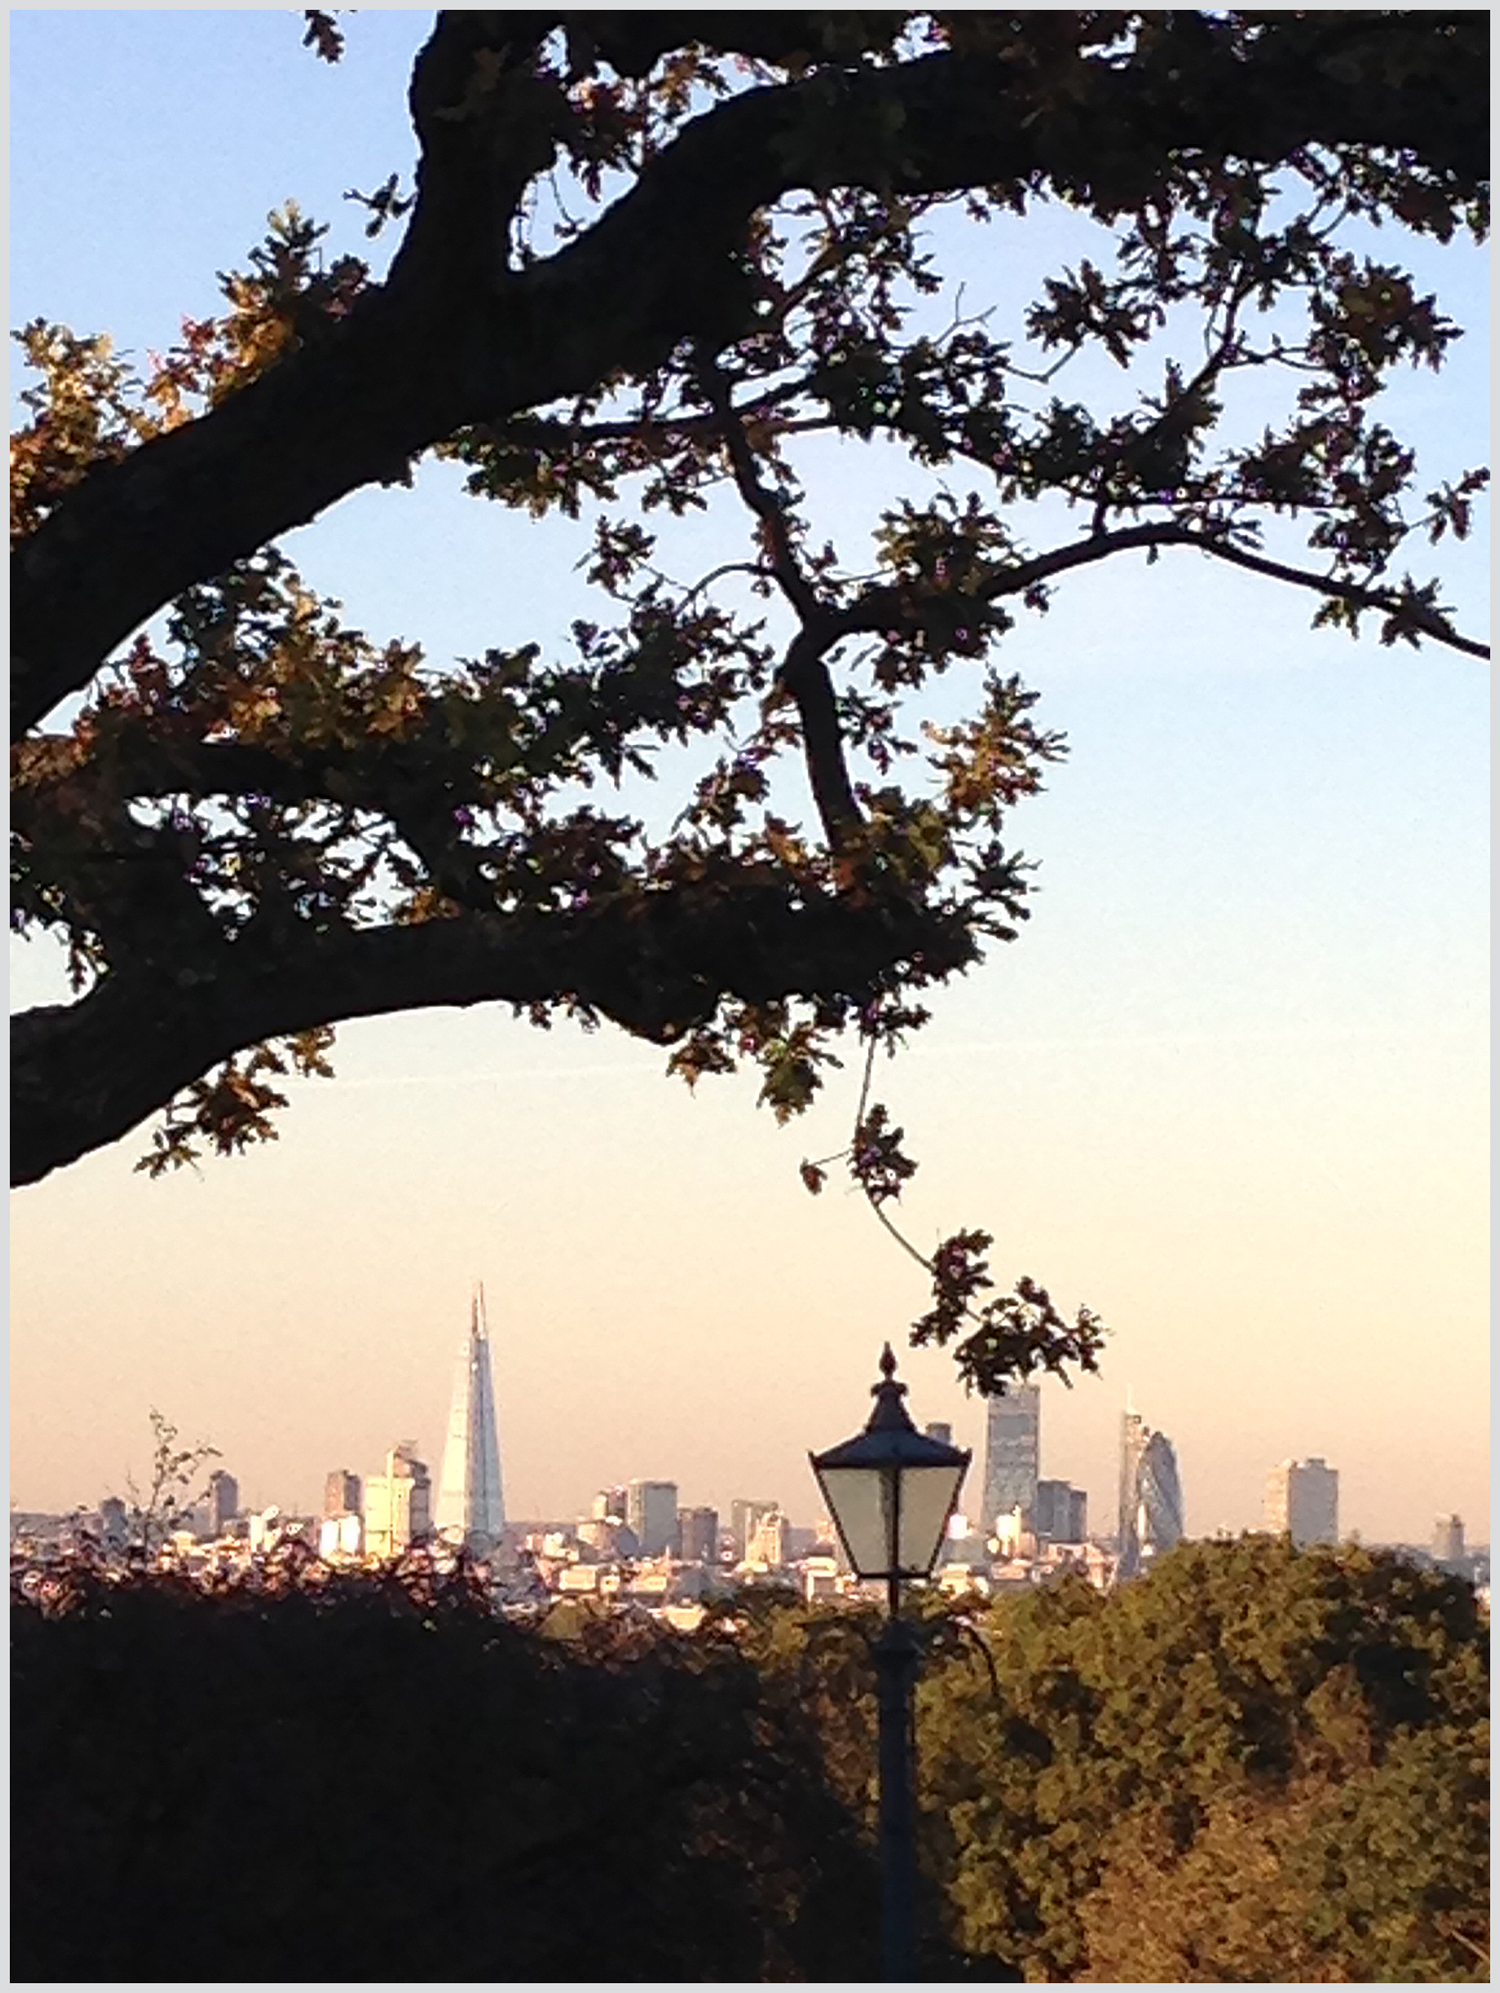 Late Afternoon Sunshine over London